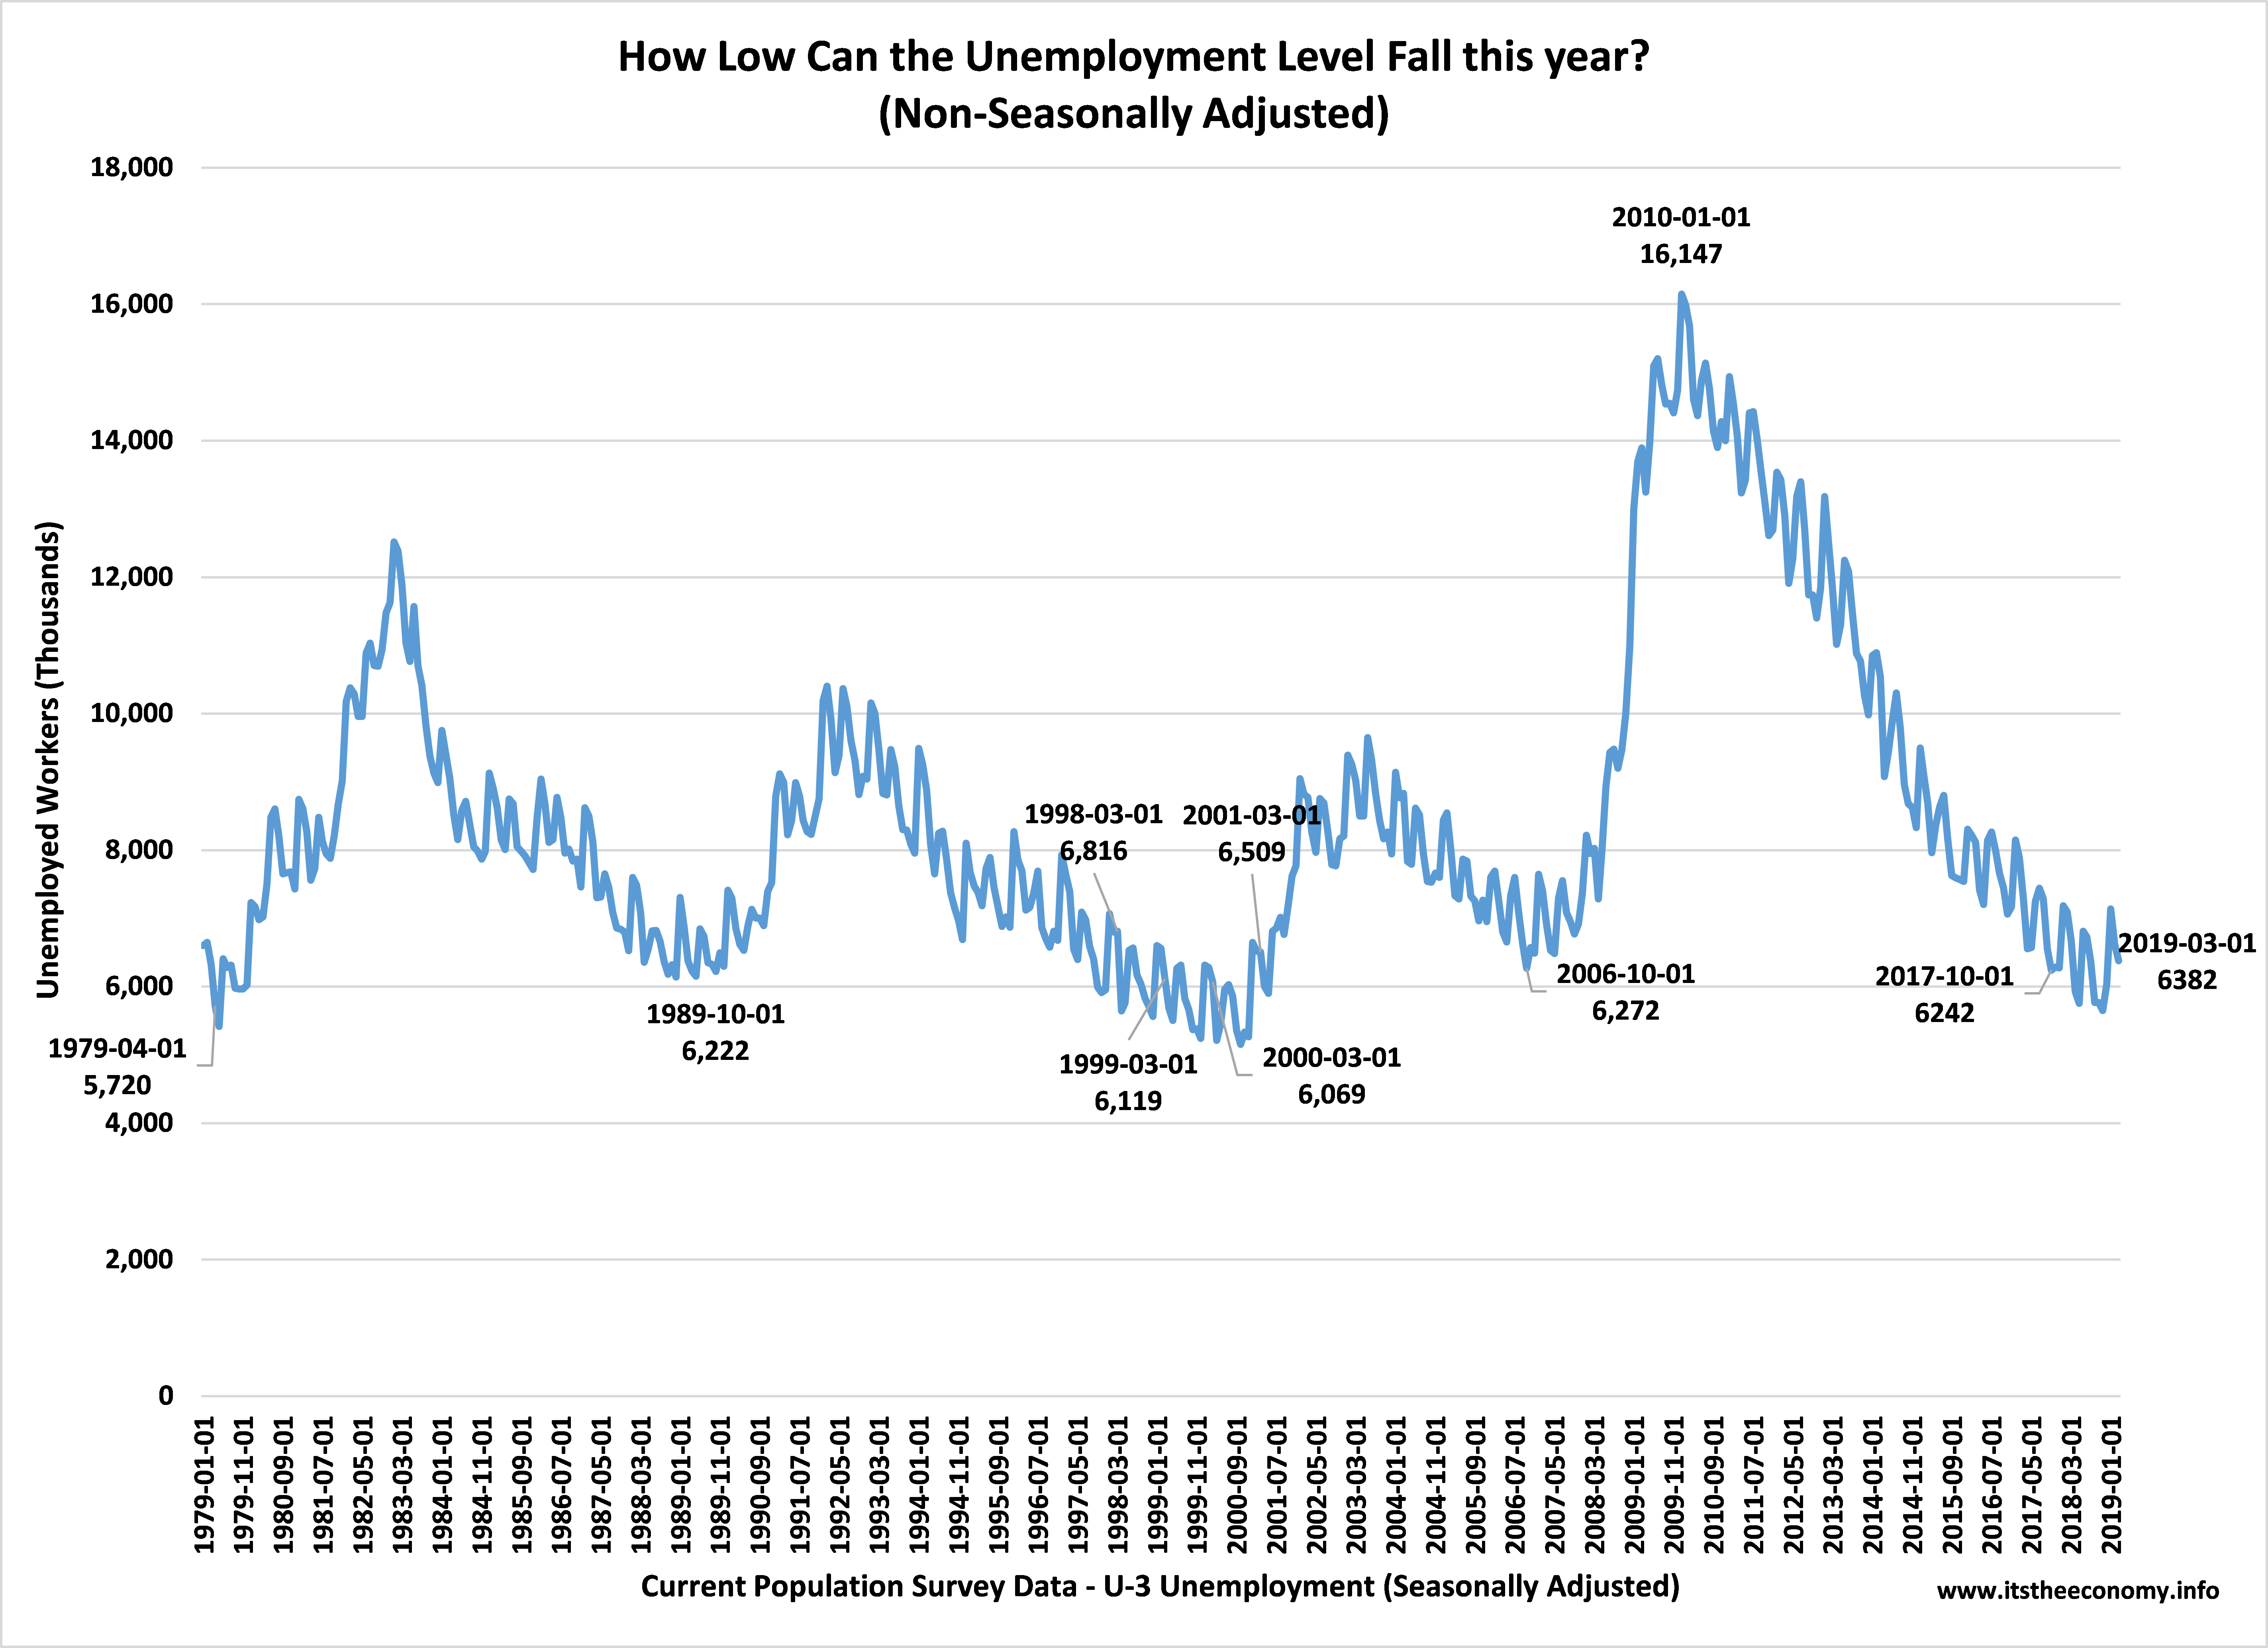 The non-seasonally adjusted unemployment level dropped to 6.382 million workers. This is slightly more than we had during March of 1999 and March 2000 and slightly lower than the number we had during march 1998 and March 2001.